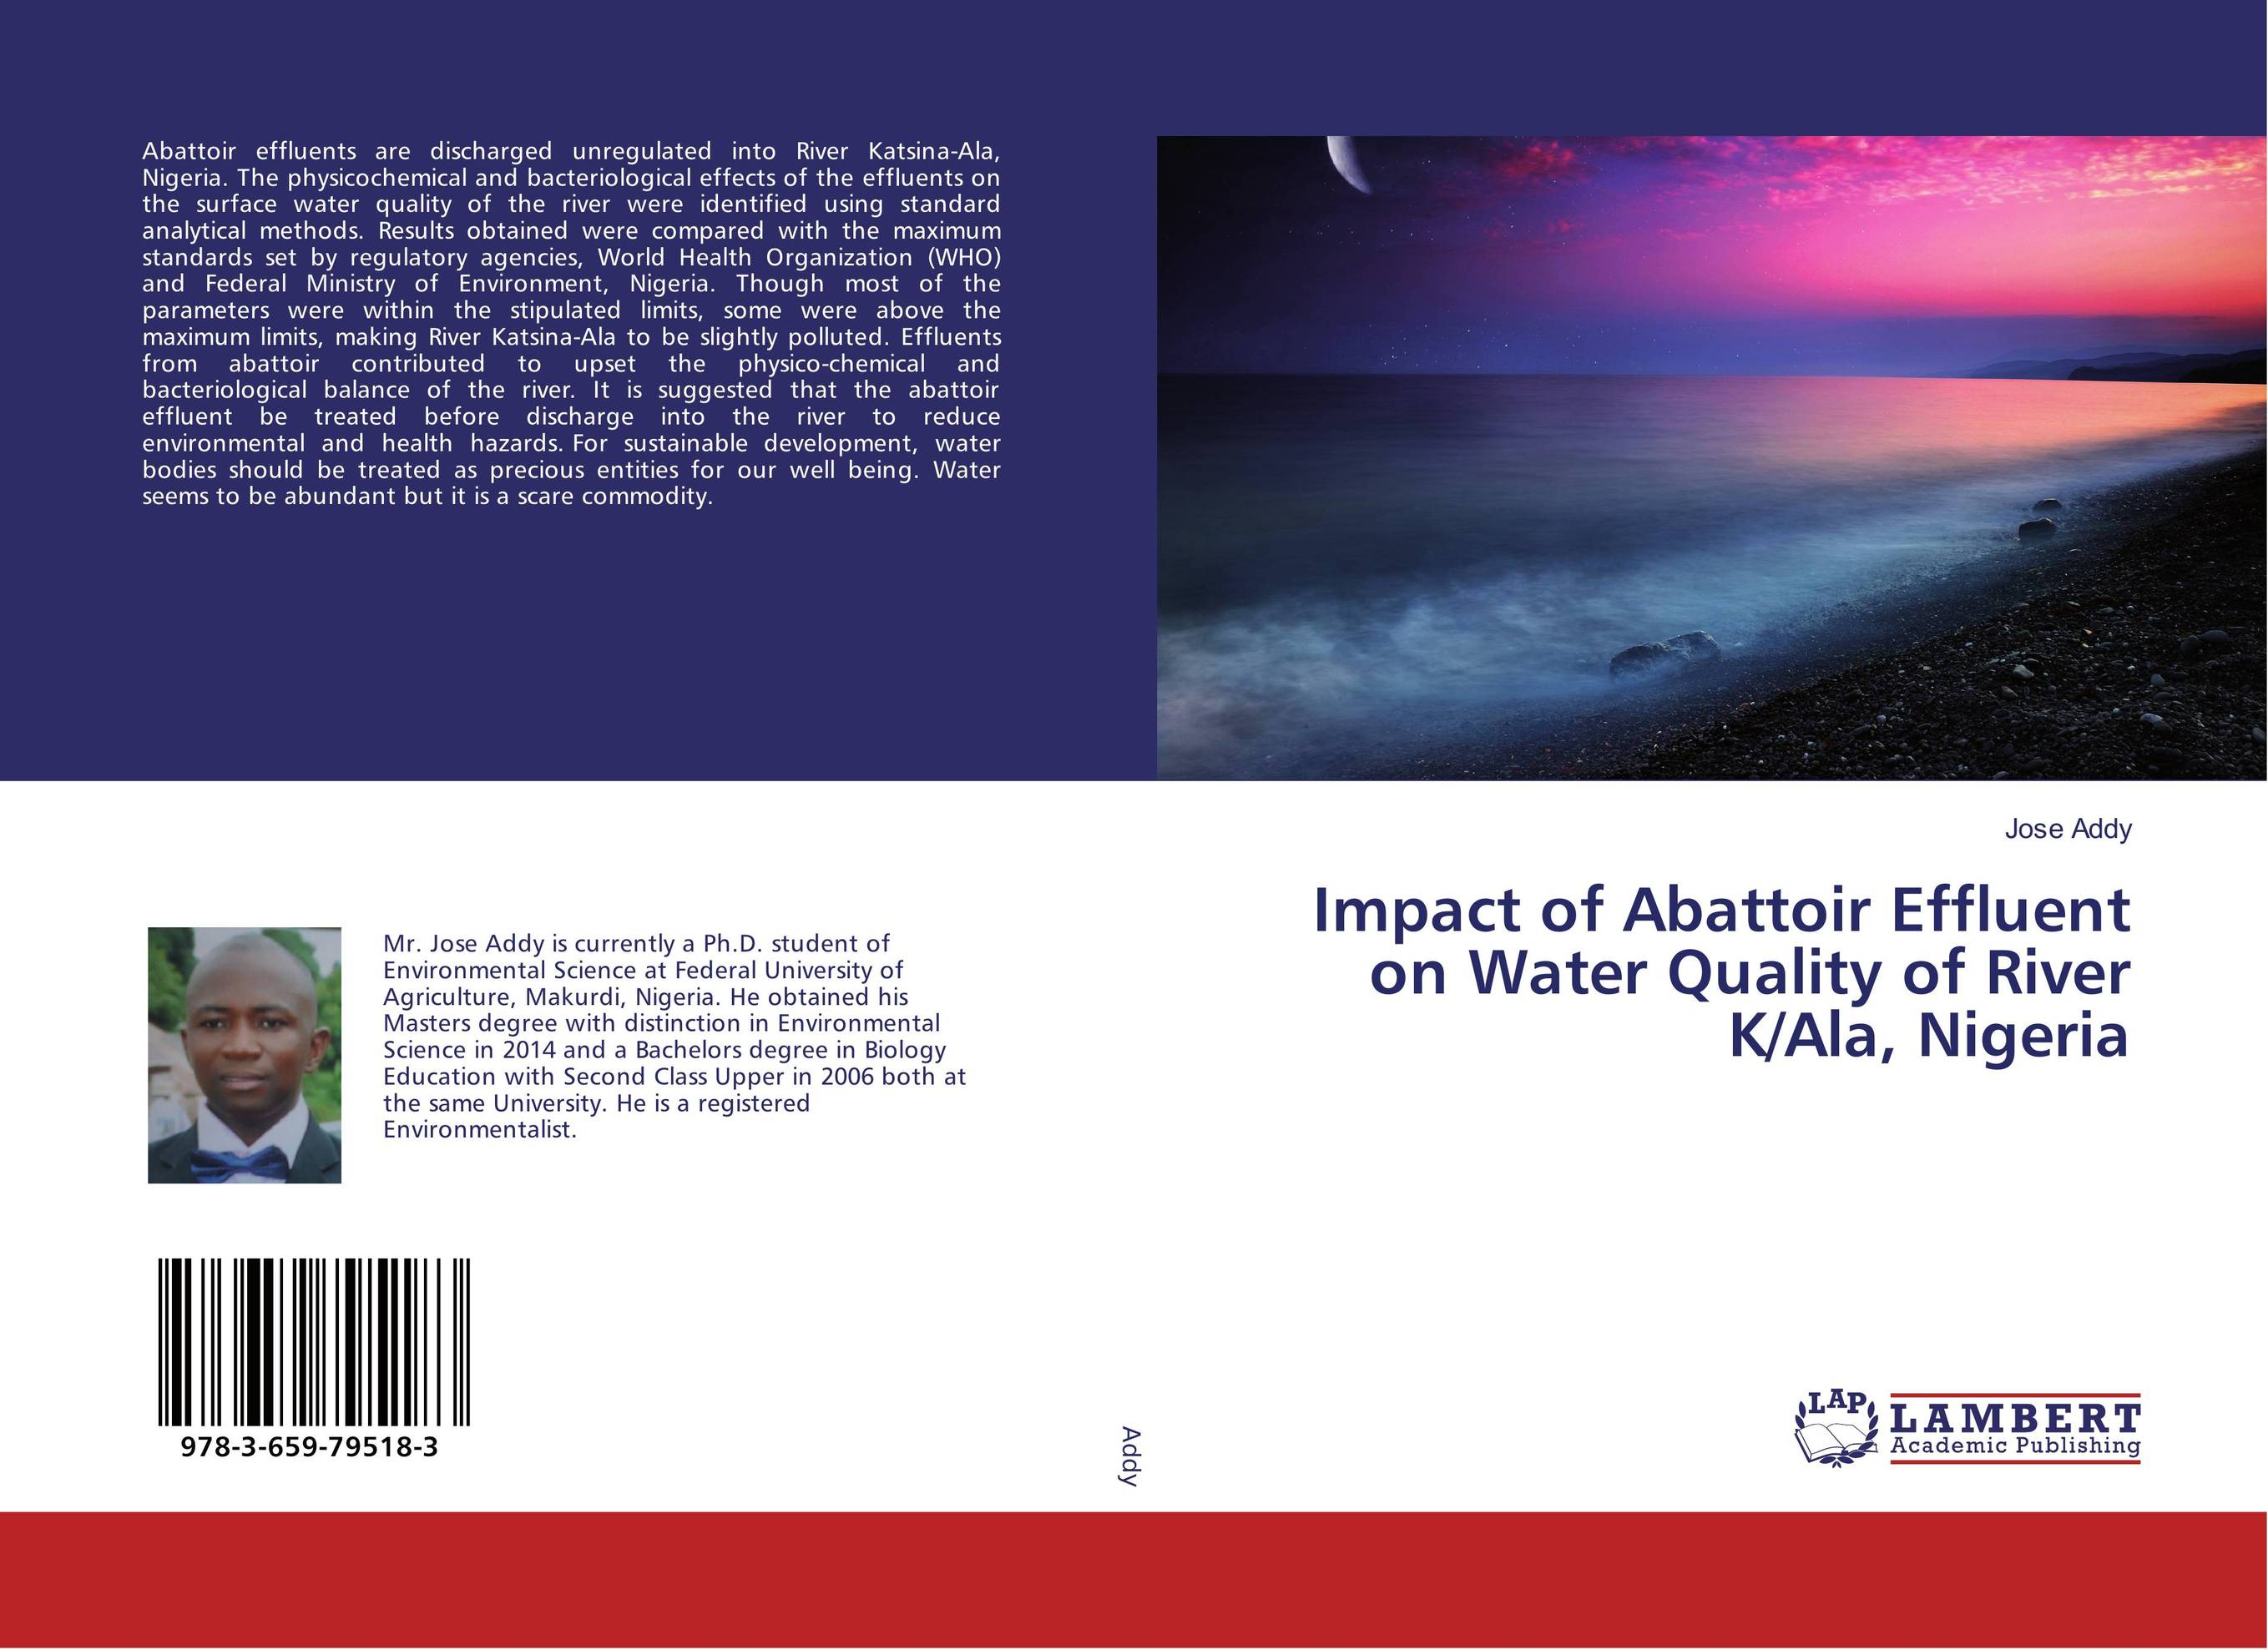 Impact of Abattoir Effluent on Water Quality of River K/Ala, Nigeria bride of the water god v 3